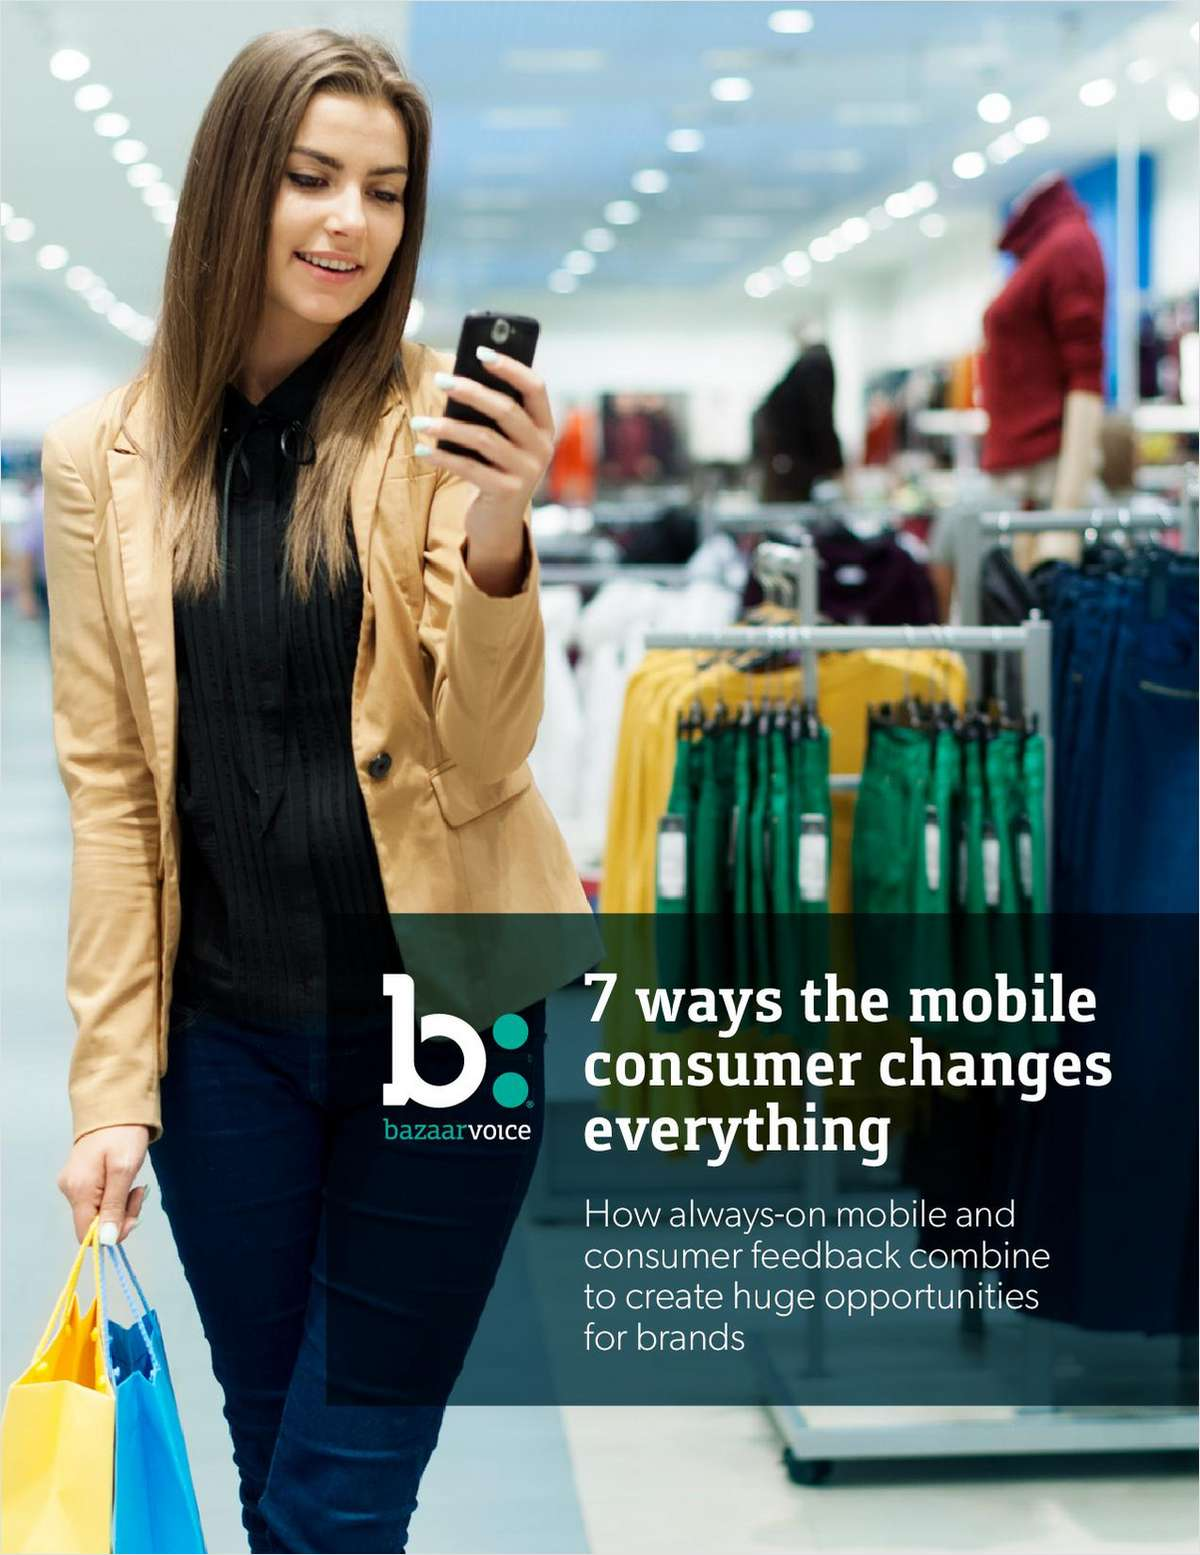 7 Ways the Mobile Consumer Changes Everything